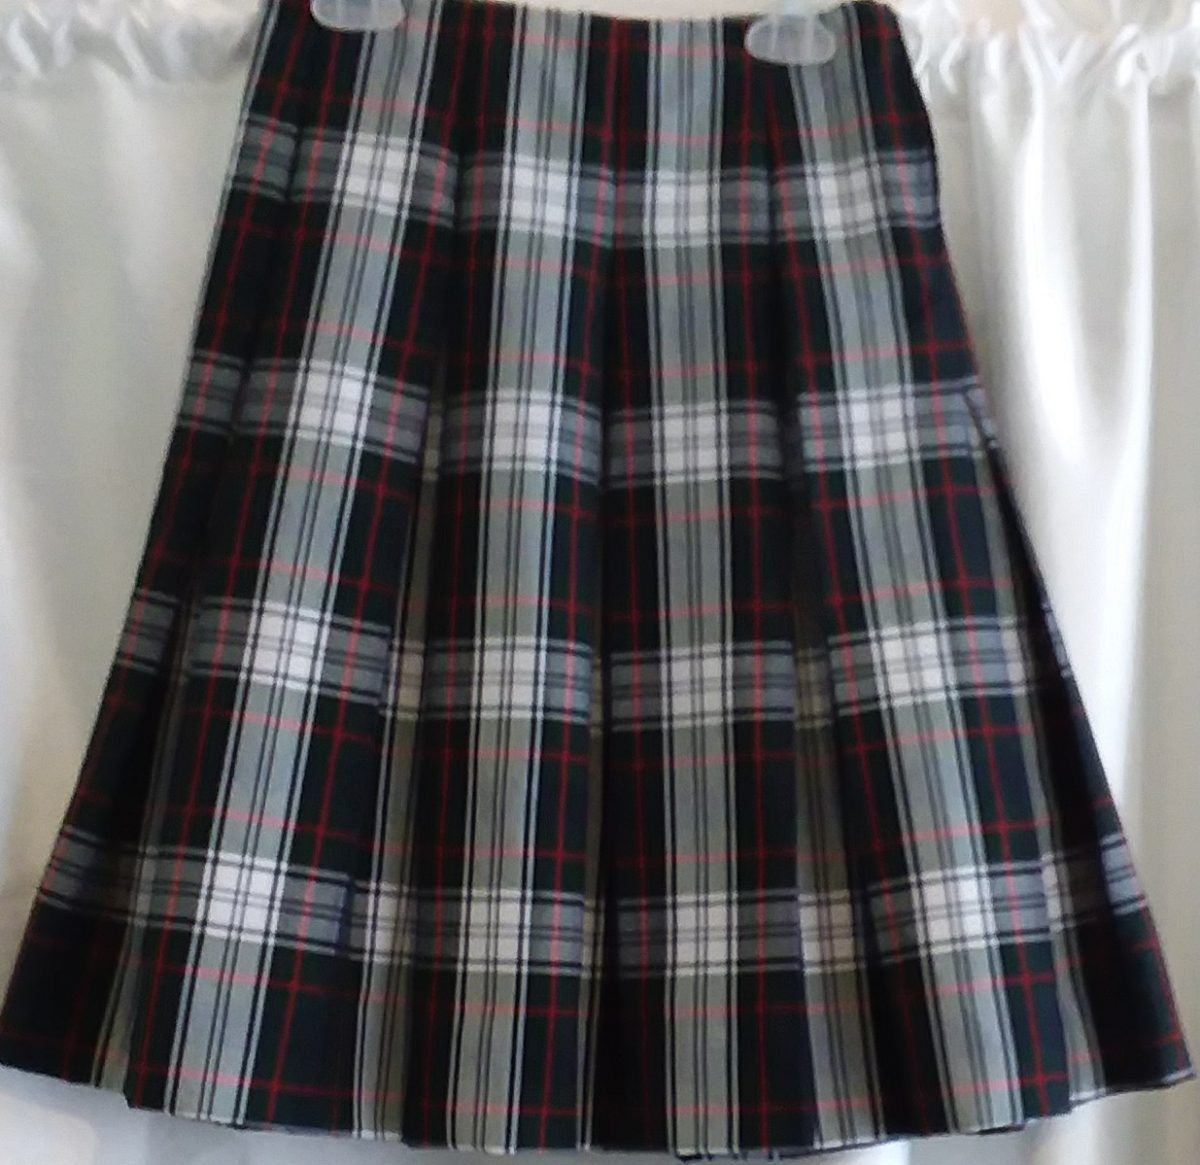 Green, Red, and White Plaid Skirt